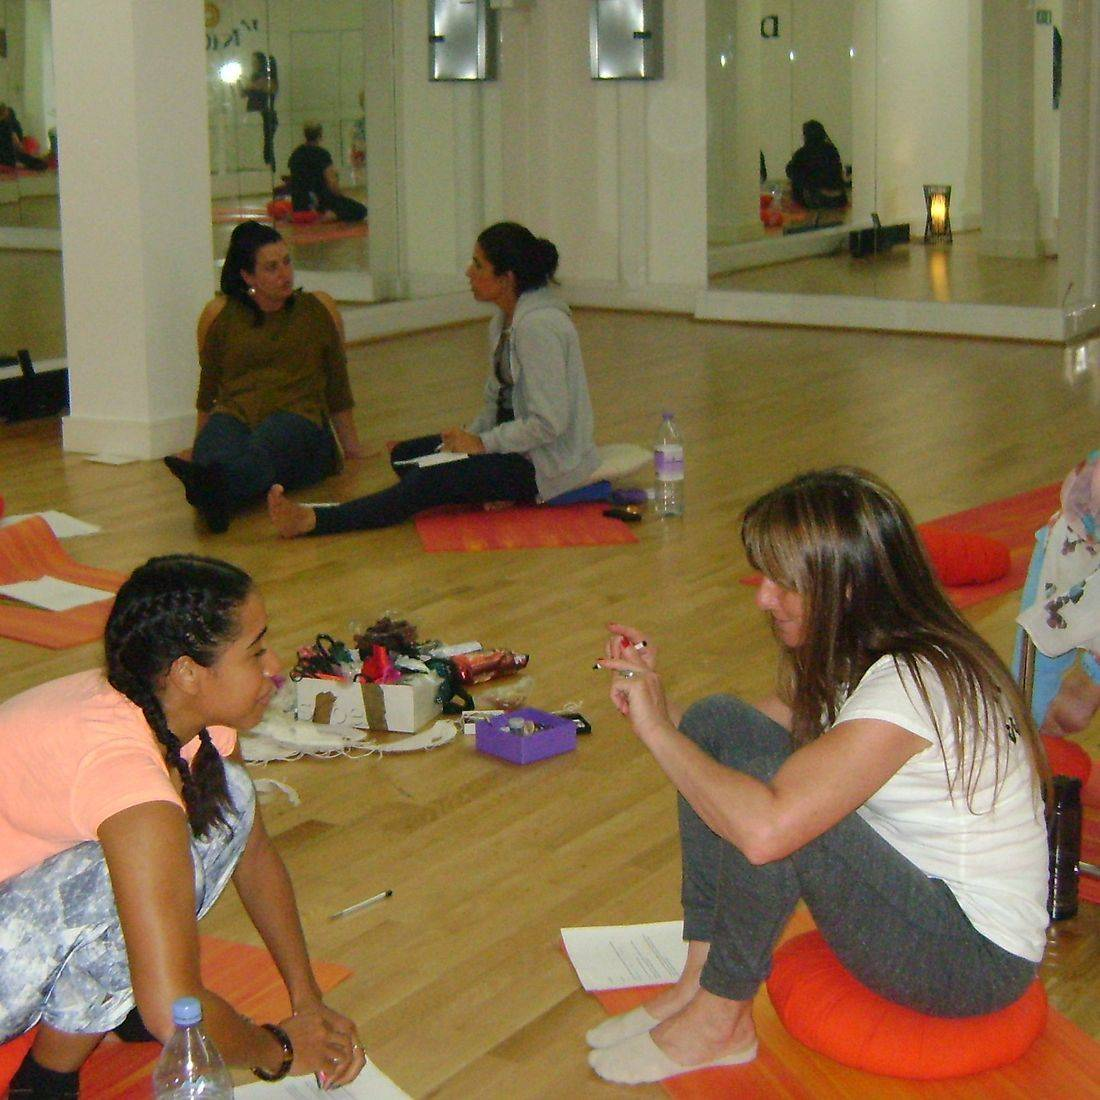 Earthmoves creative workshop dance studio book now retreat discussion yoga